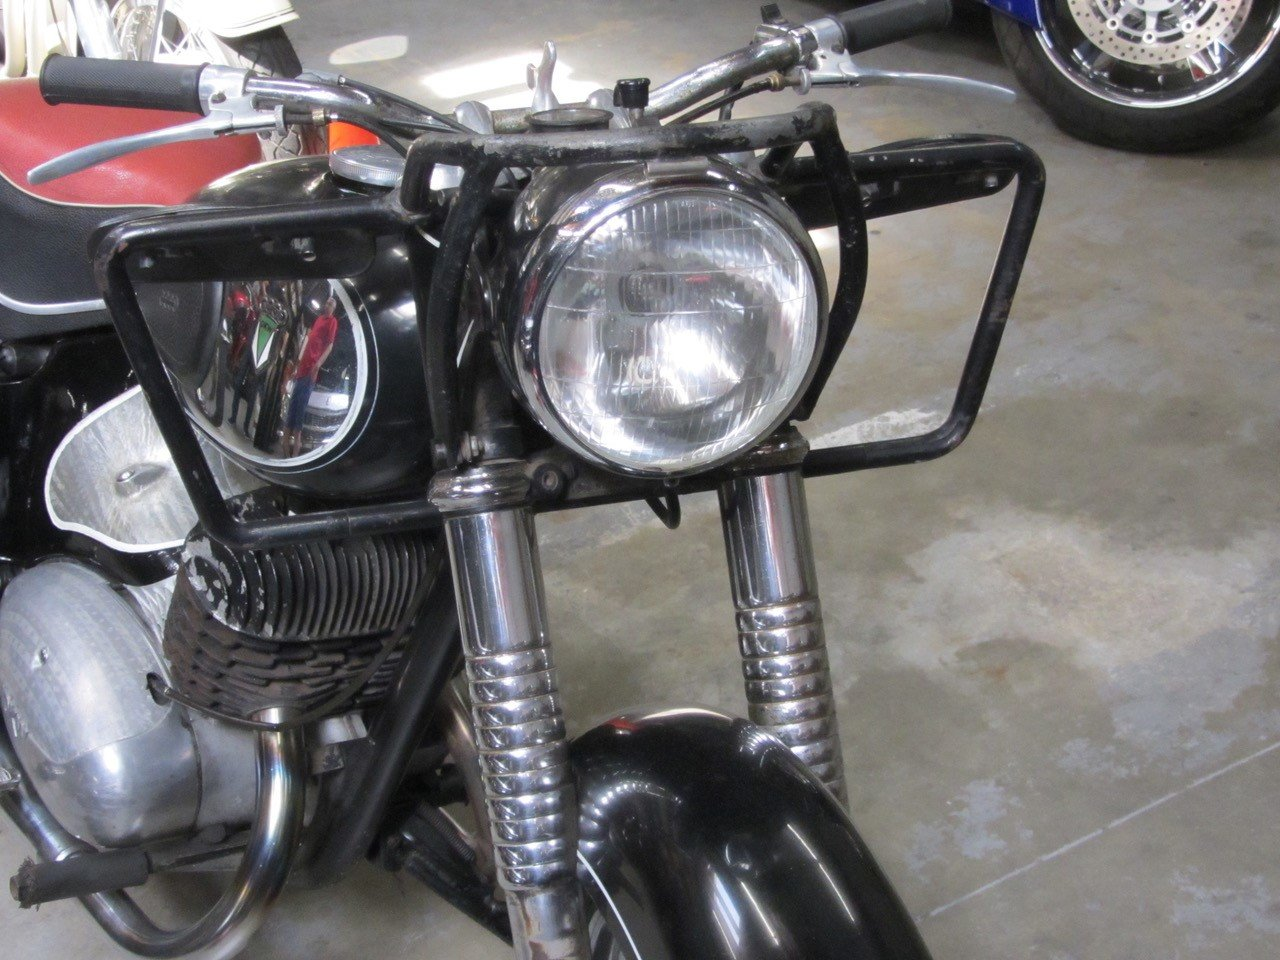 DKW RT 350 S 1956 For Sale (picture 3 of 6)